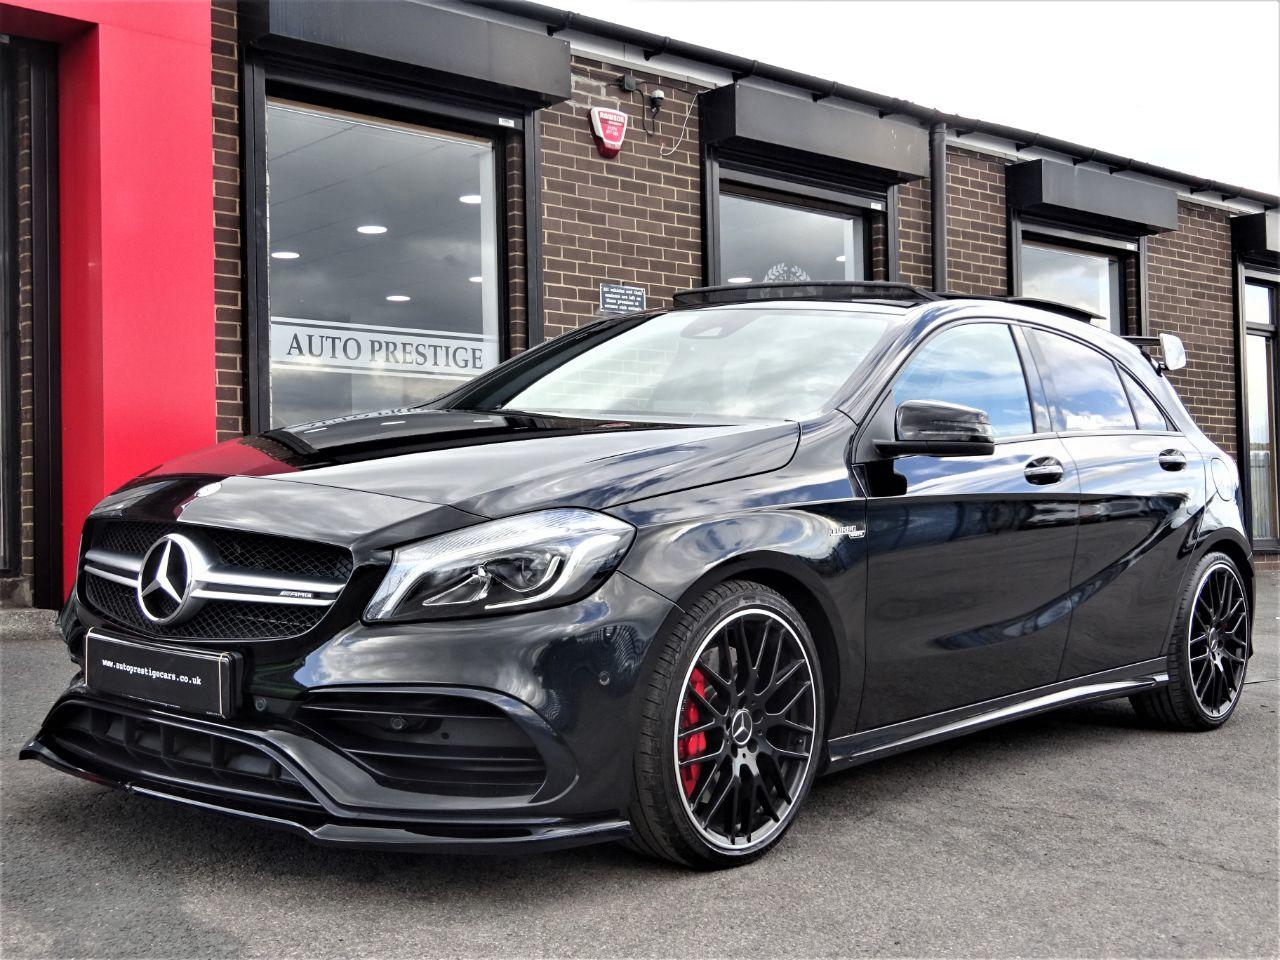 Mercedes-Benz A Class 2.0 A45 4Matic Premium 5dr Auto WITH EXTRAS AND EXTENDED WARRANTY Hatchback Petrol Black at Autoprestige Bradford